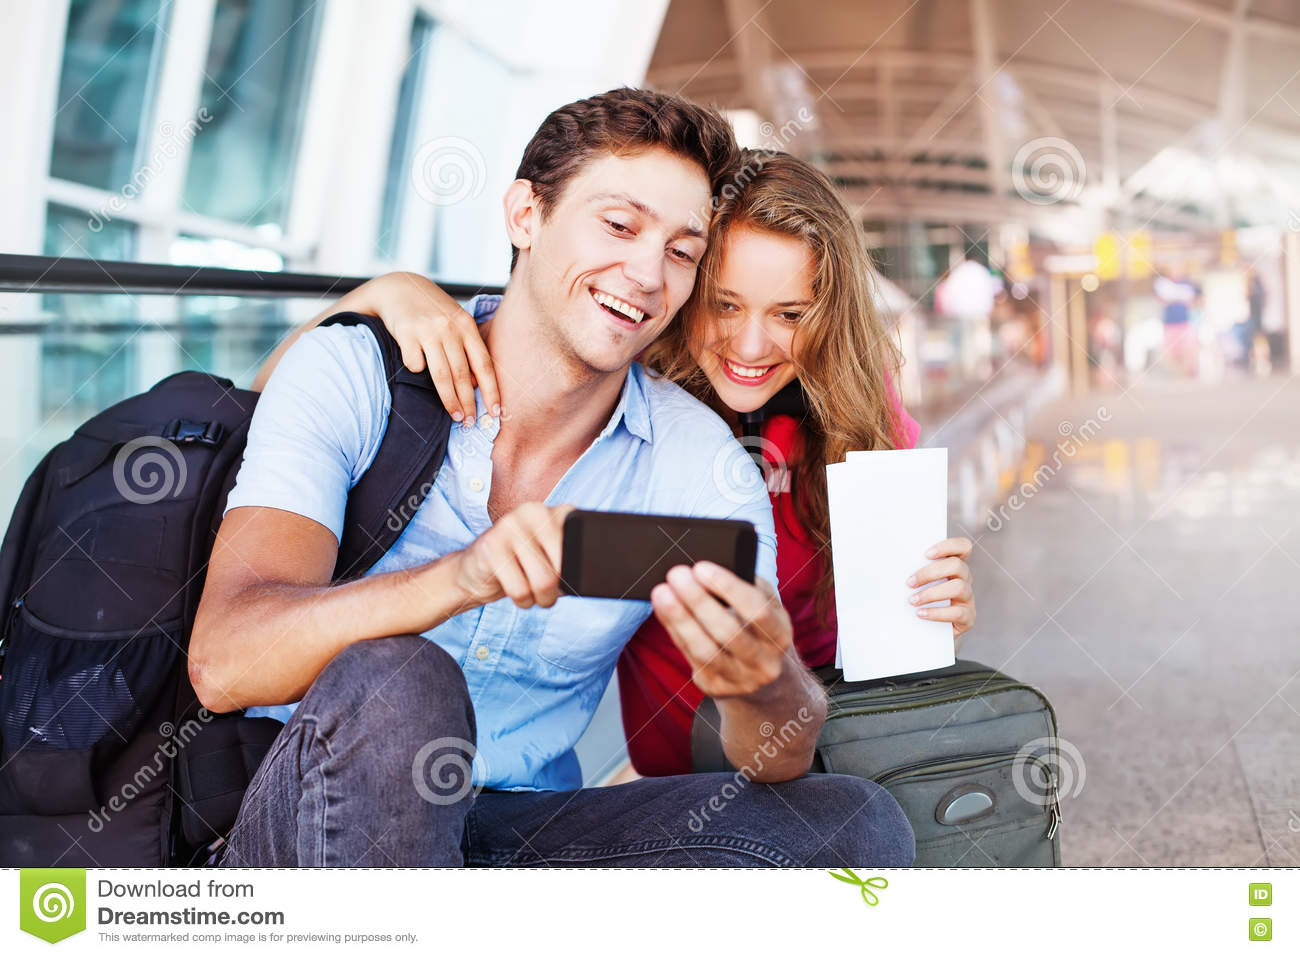 Couple in airport using travel app